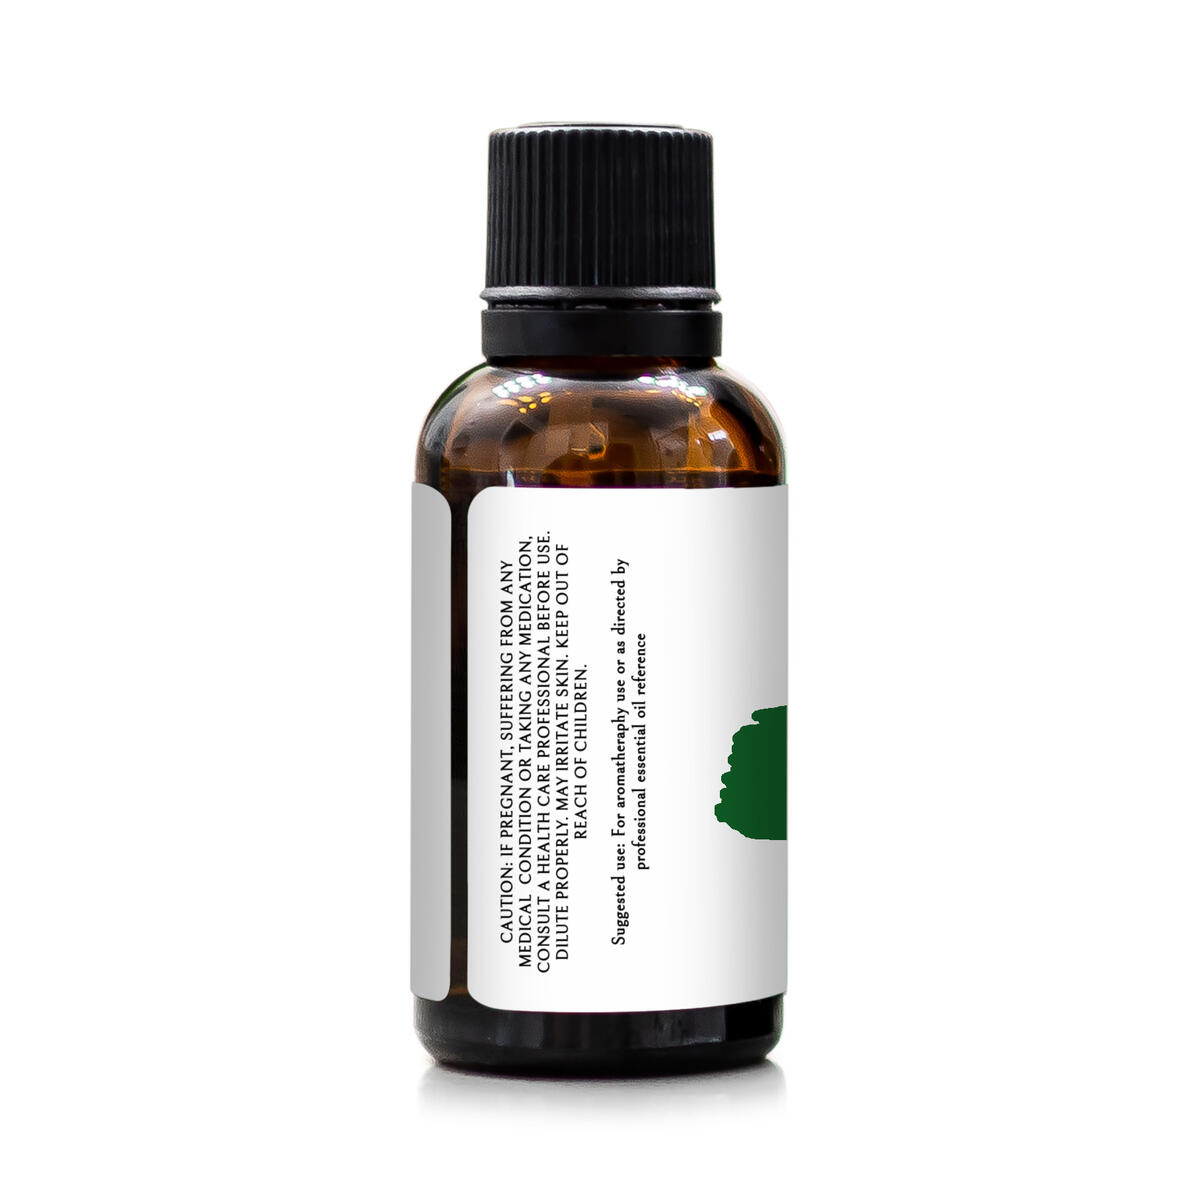 NityaLife Organic Peppermint Essential Oil - USDA Certified -  Calming, reduces stress, many household uses, repels pests